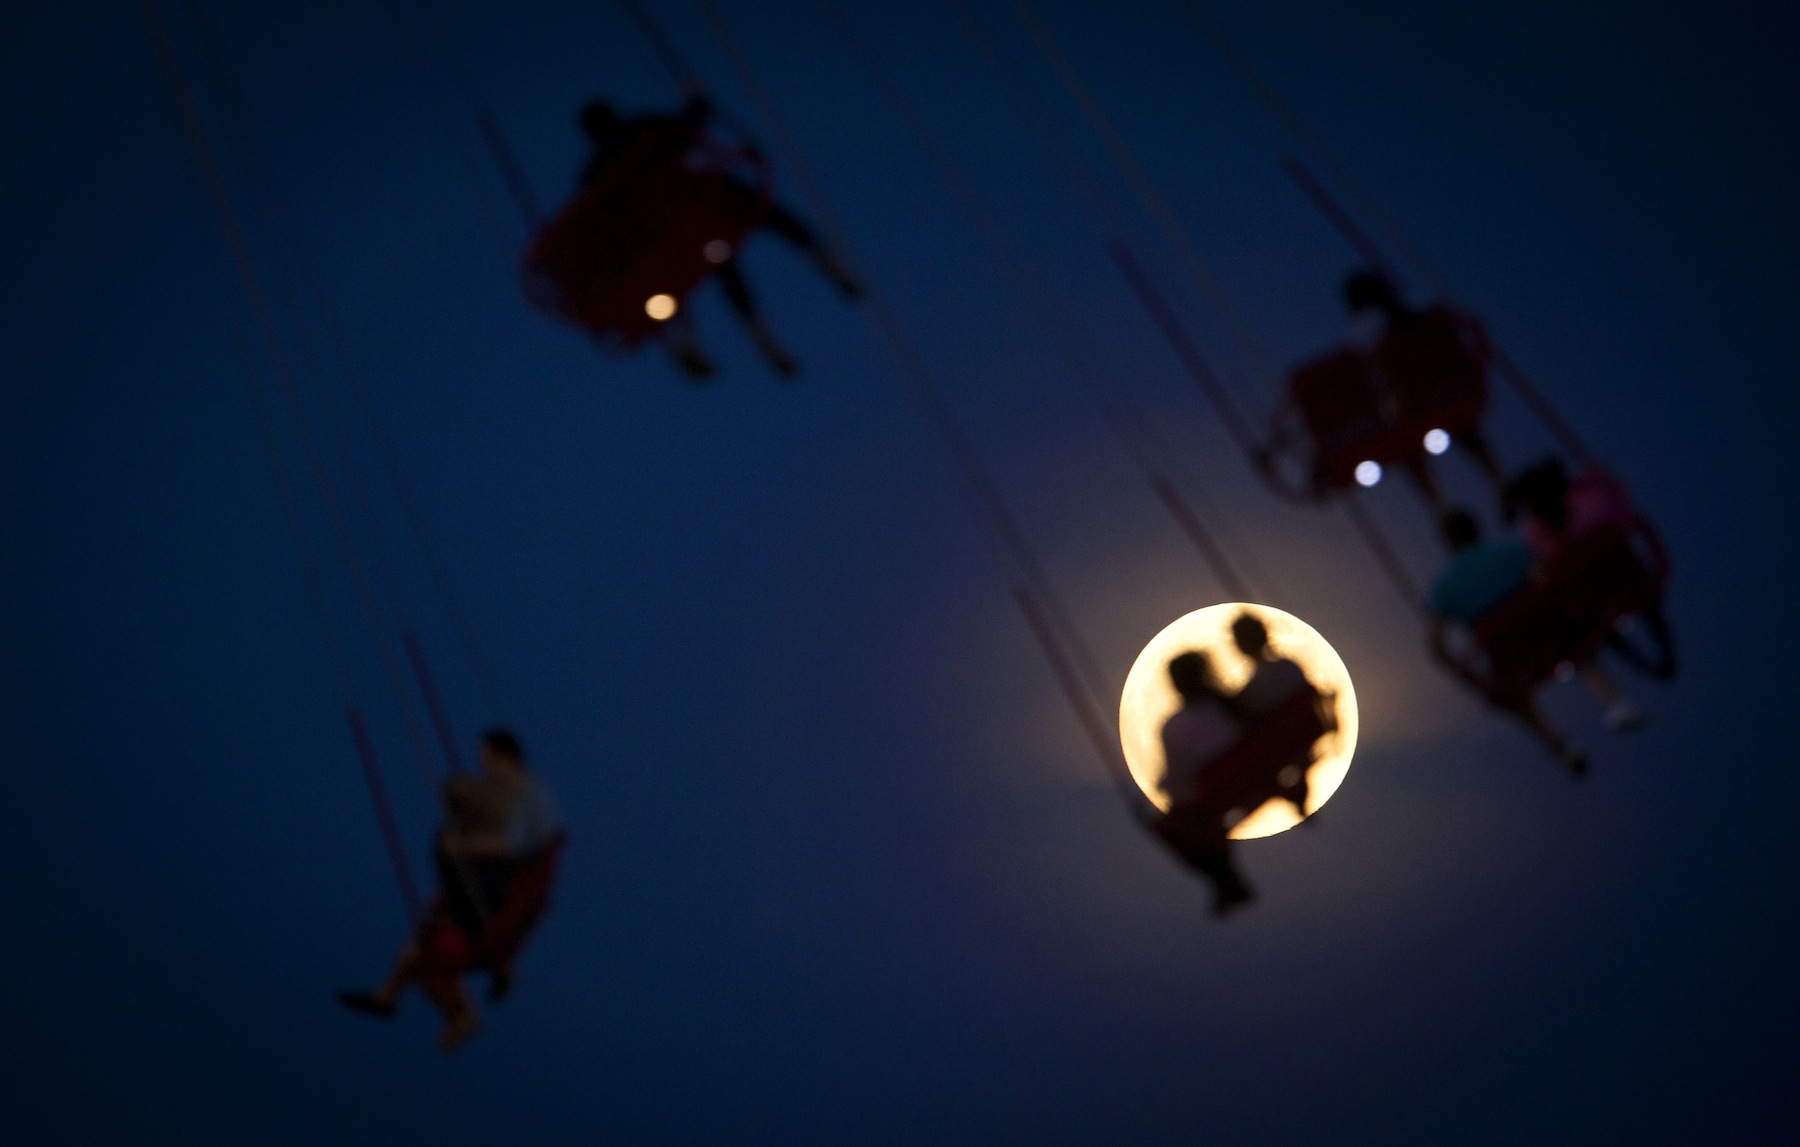 """People ride the Luna Park Swing Ride as the Super Moon rises on Coney Island, June 22, 2013. The largest full moon of the year called the """"super moon"""" will light up the night sky this weekend. REUTERS/Carlo Allegri (UNITED STATES - Tags: ENVIRONMENT SOCIETY TPX IMAGES OF THE DAY) - RTX10XOP"""